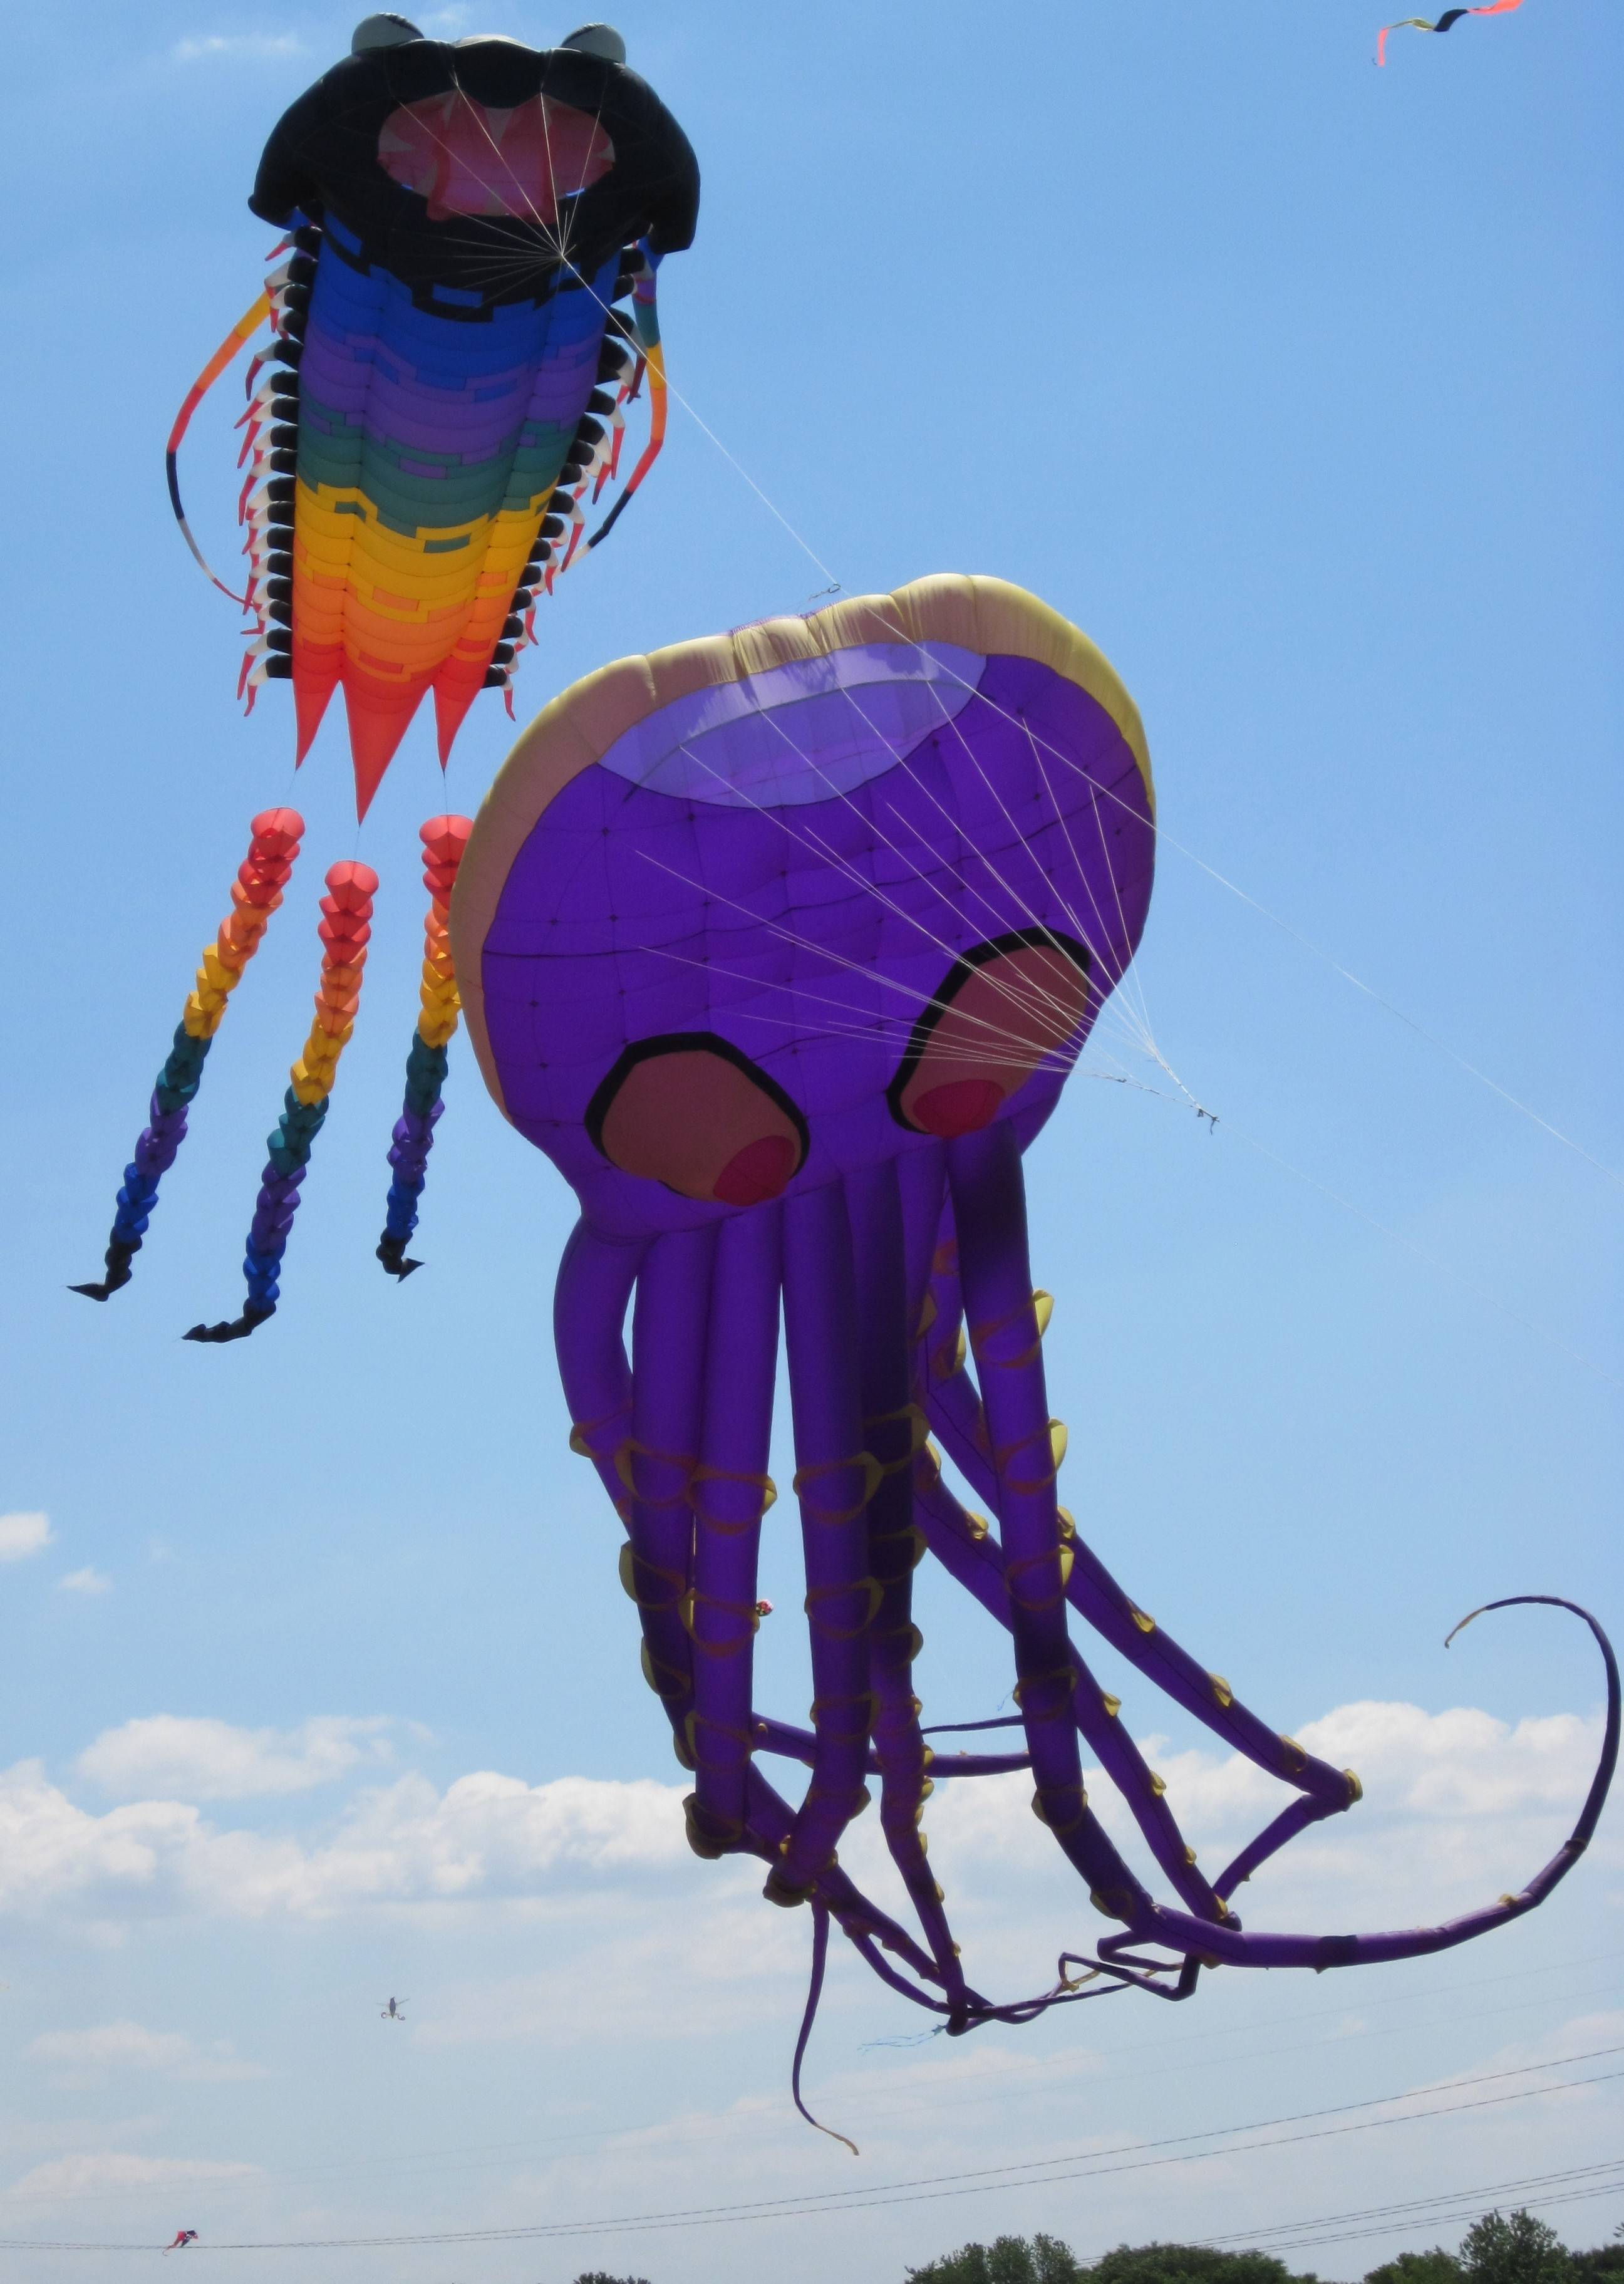 The Naperville Park District is hosting its eighth annual Frontier Kite Fly Festival from 10 a.m. to 4 p.m. Sunday at the Frontier Sports Complex in Naperville, 3380 Cedar Glade Road.